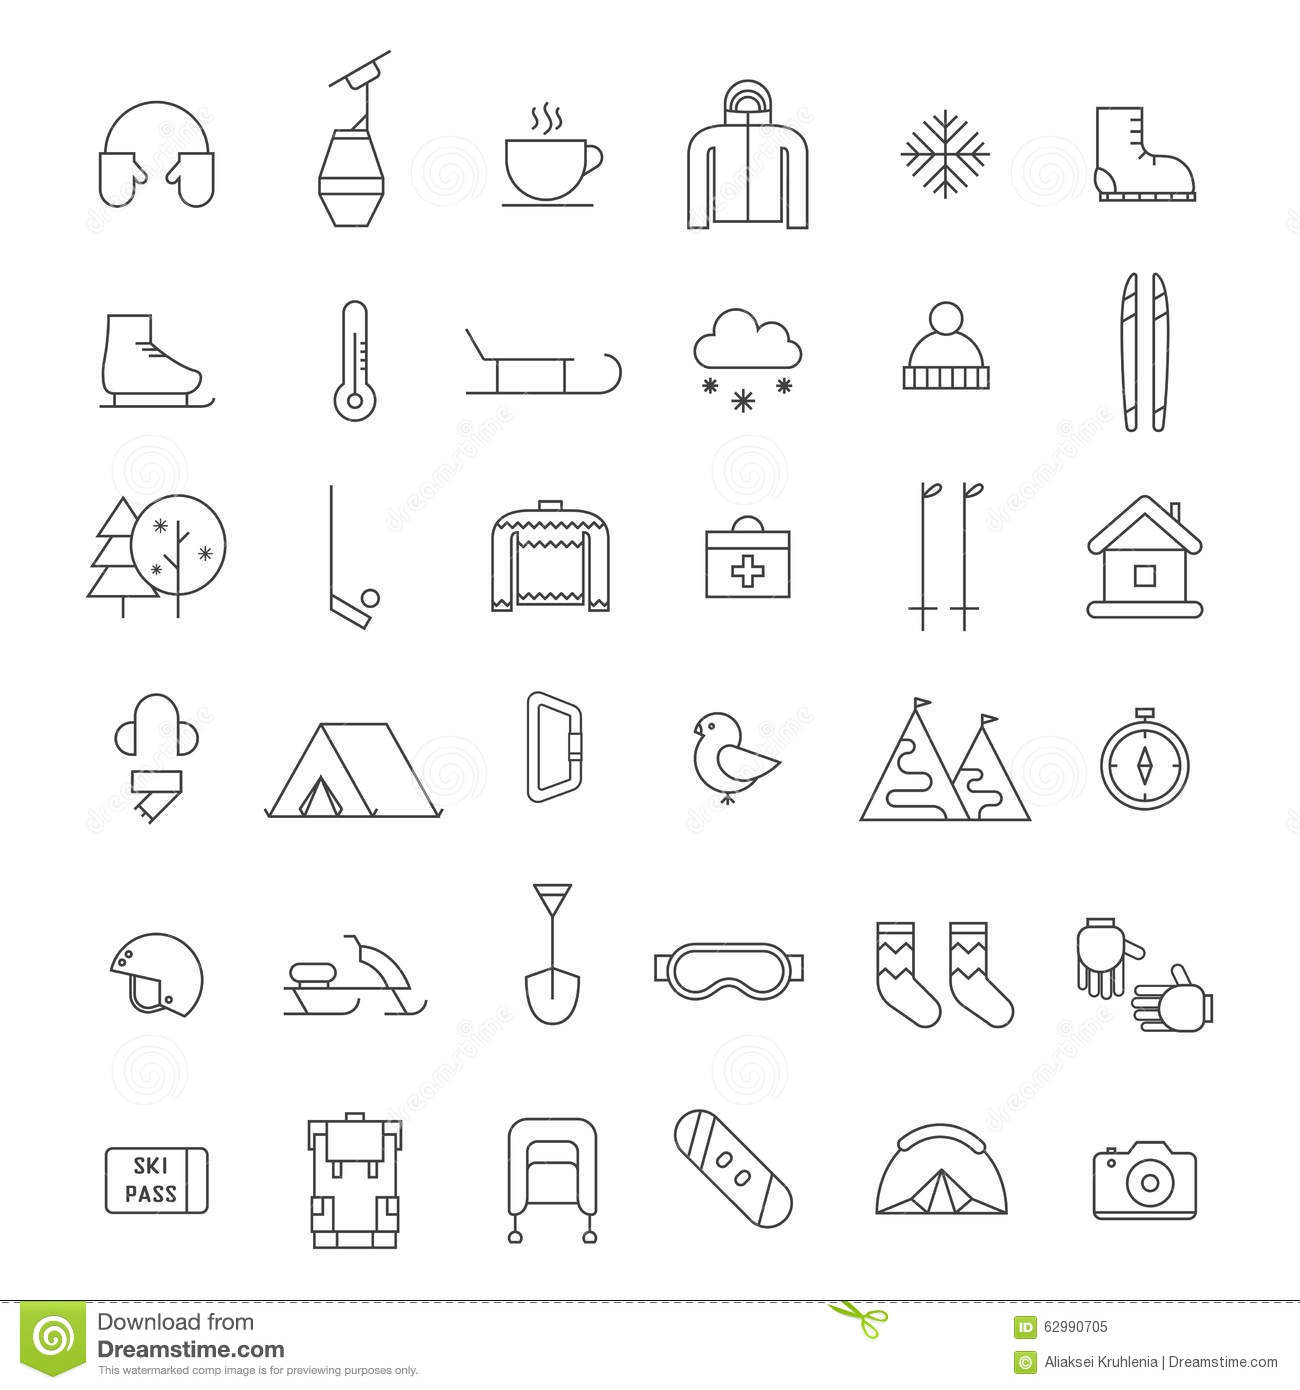 efe94ed47977 Winter activities thin line icon set. Winter sports shape icons. Winter  travel